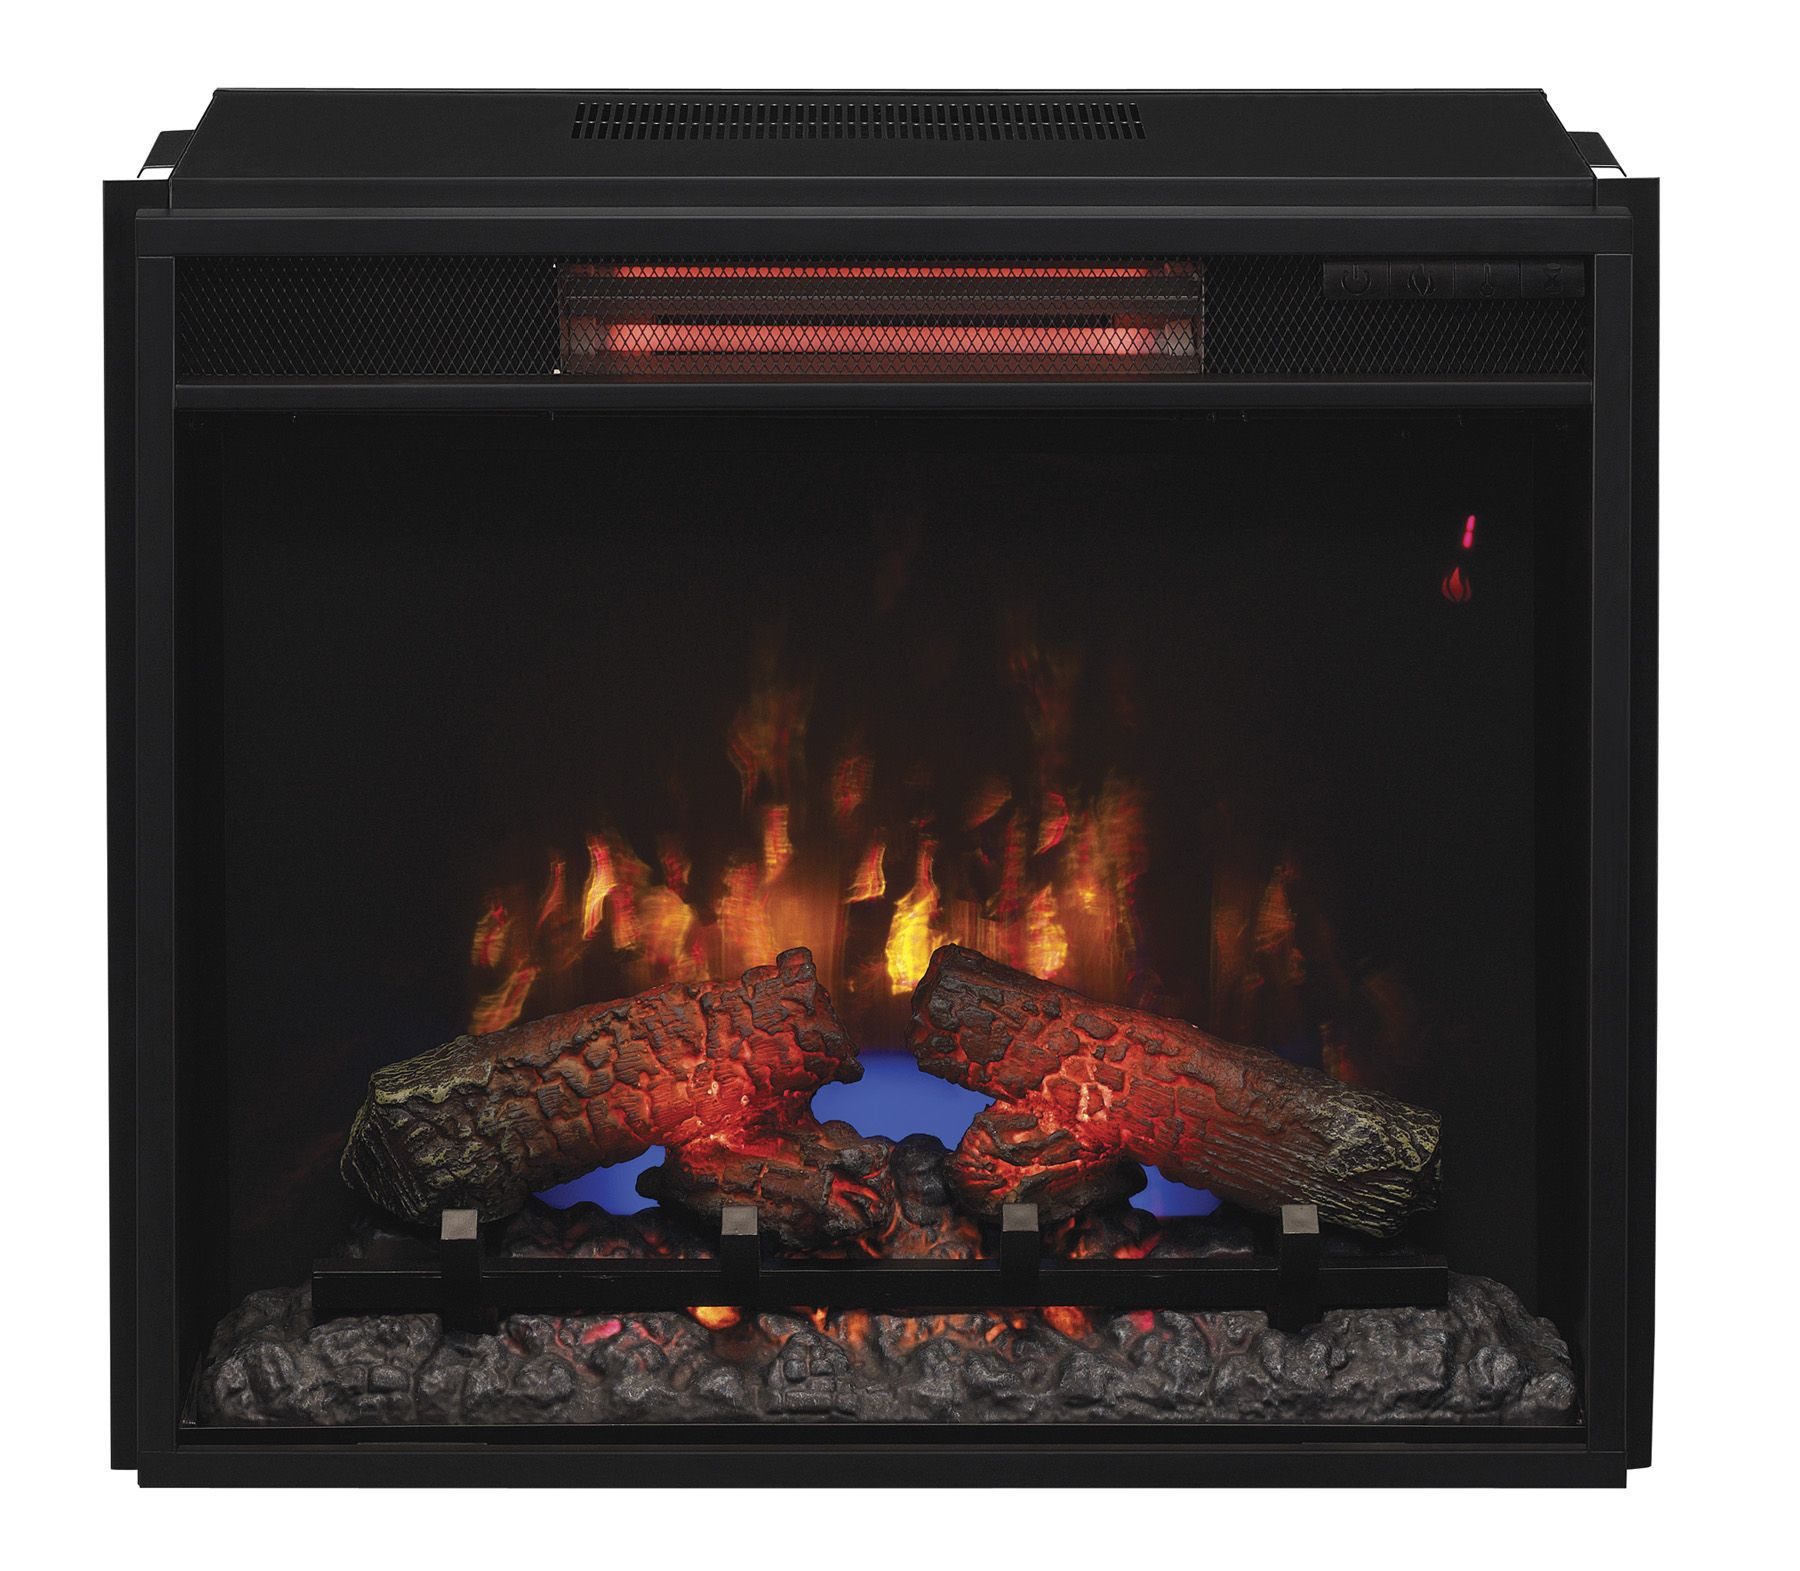 Classic flame 23 inch infrared electric fireplace insert spectrafire classicflame electric fireplace insert with safer plug final call for this special discount home decor fireplaces accessories teraionfo